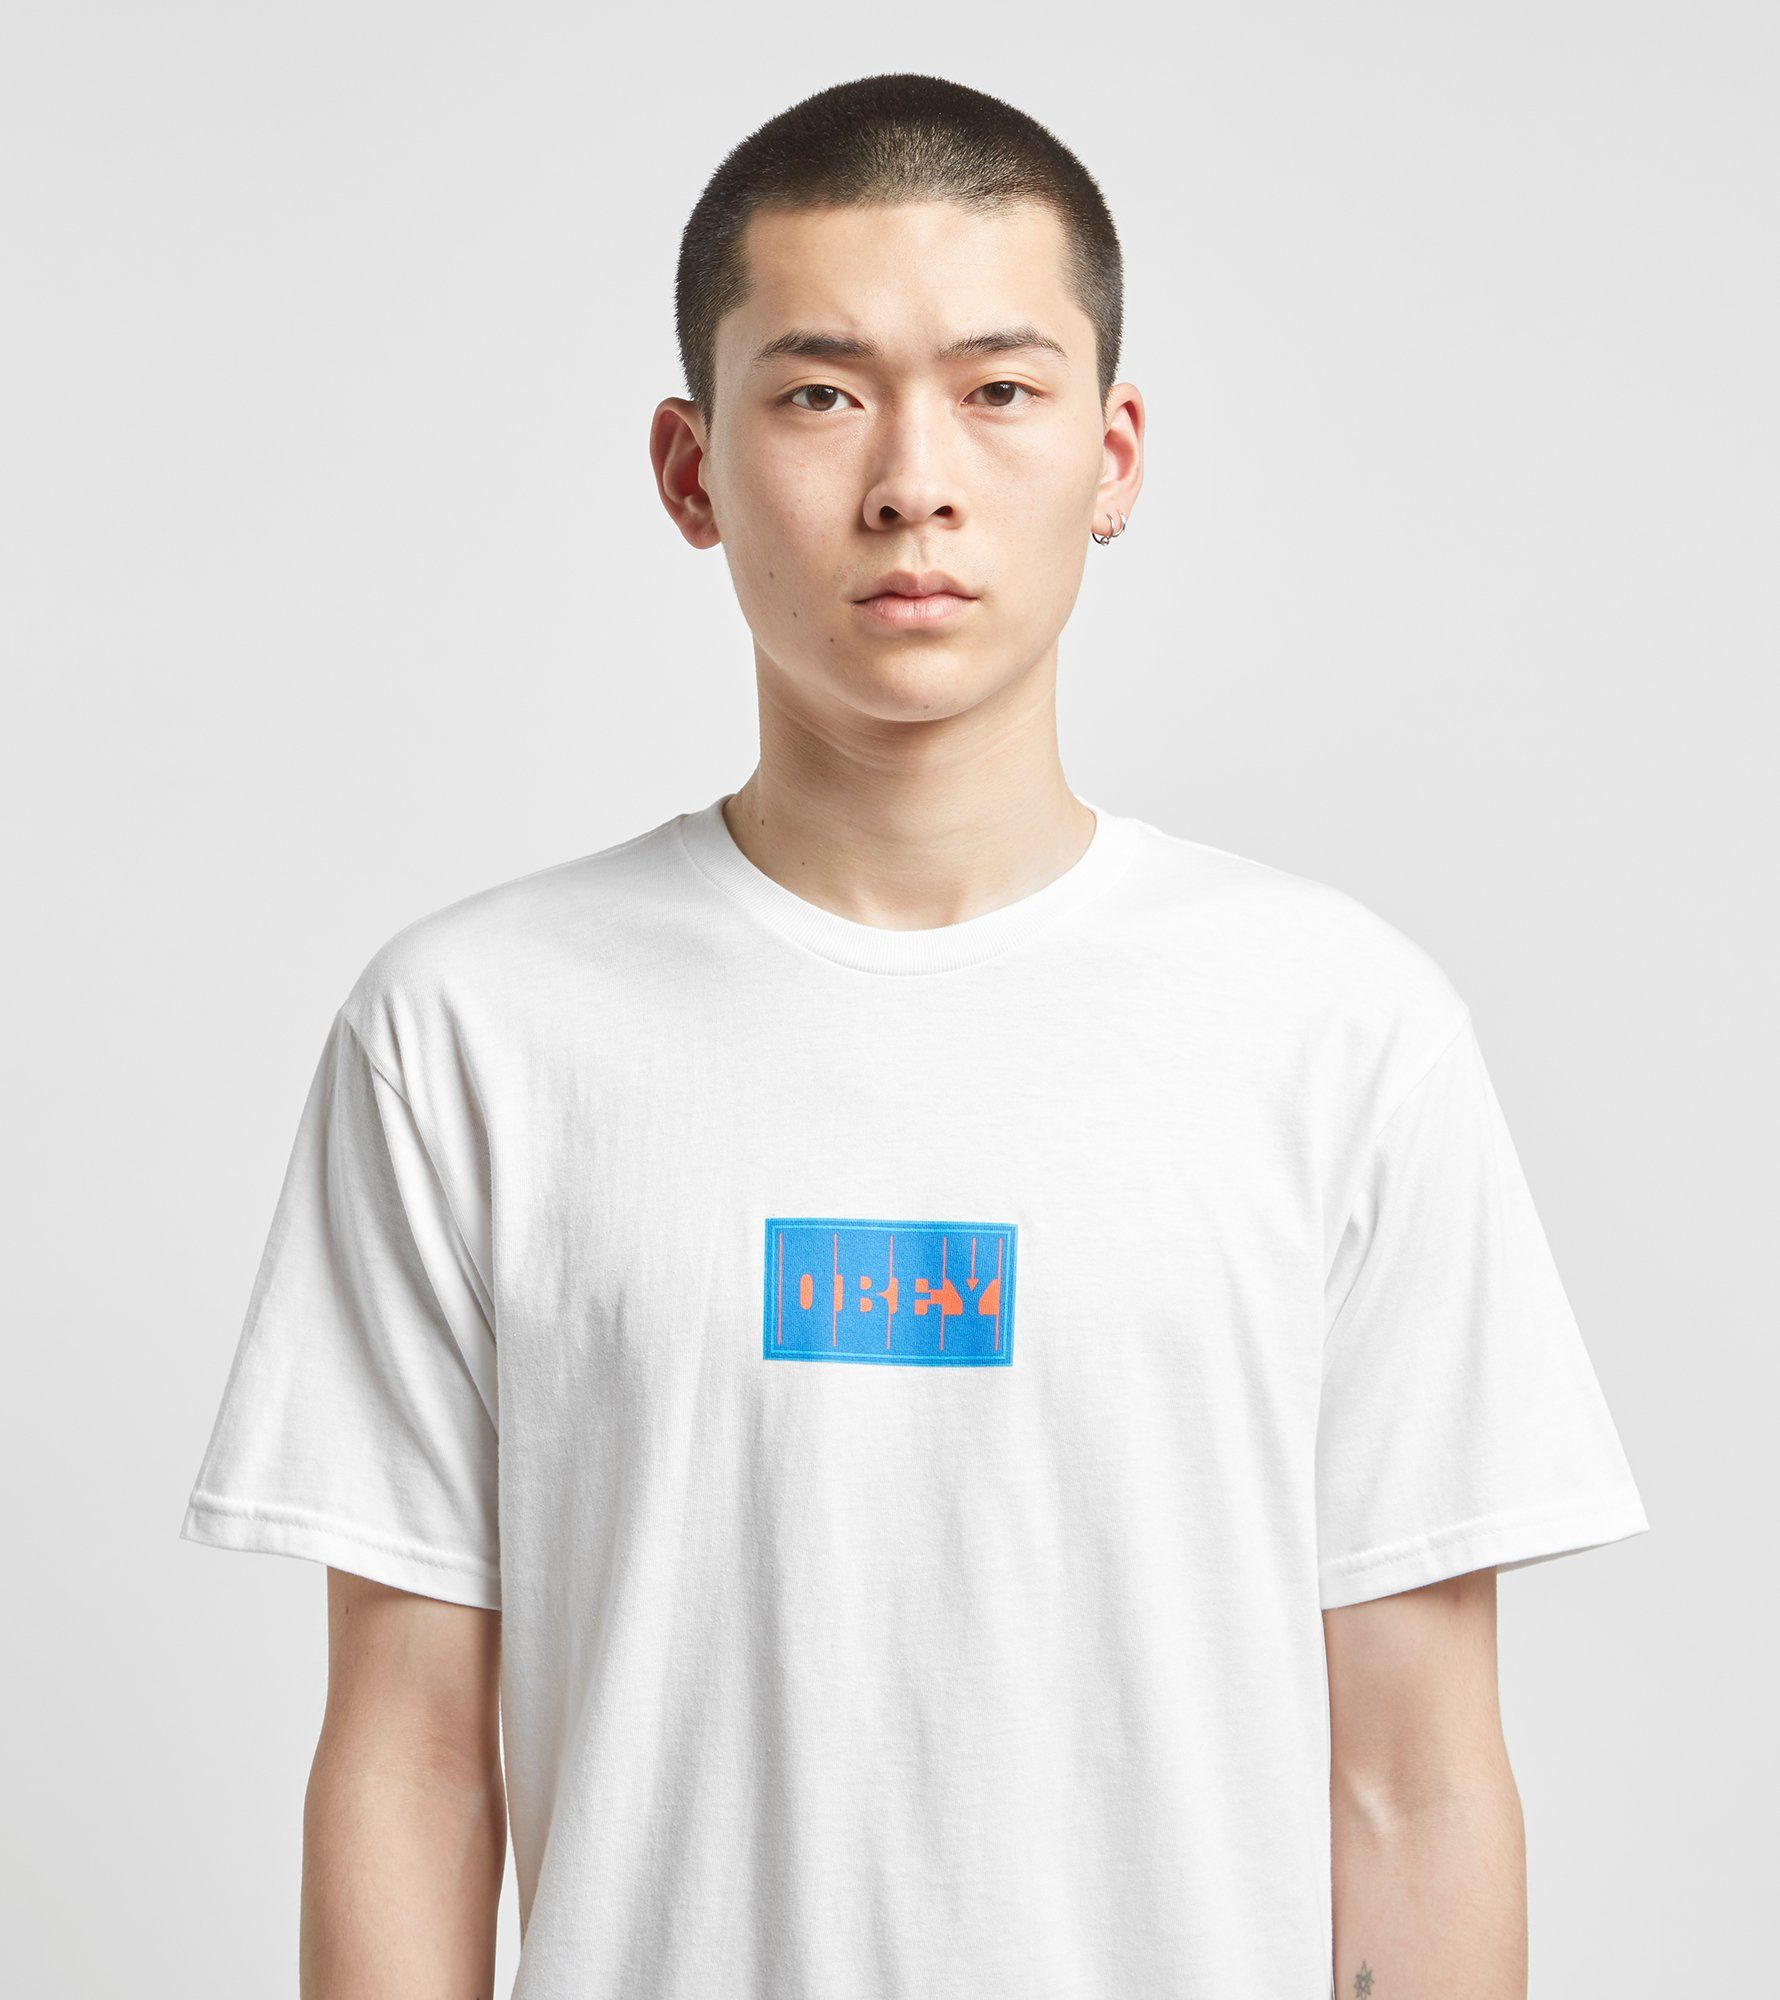 Obey Dazed & Abused T-Shirt